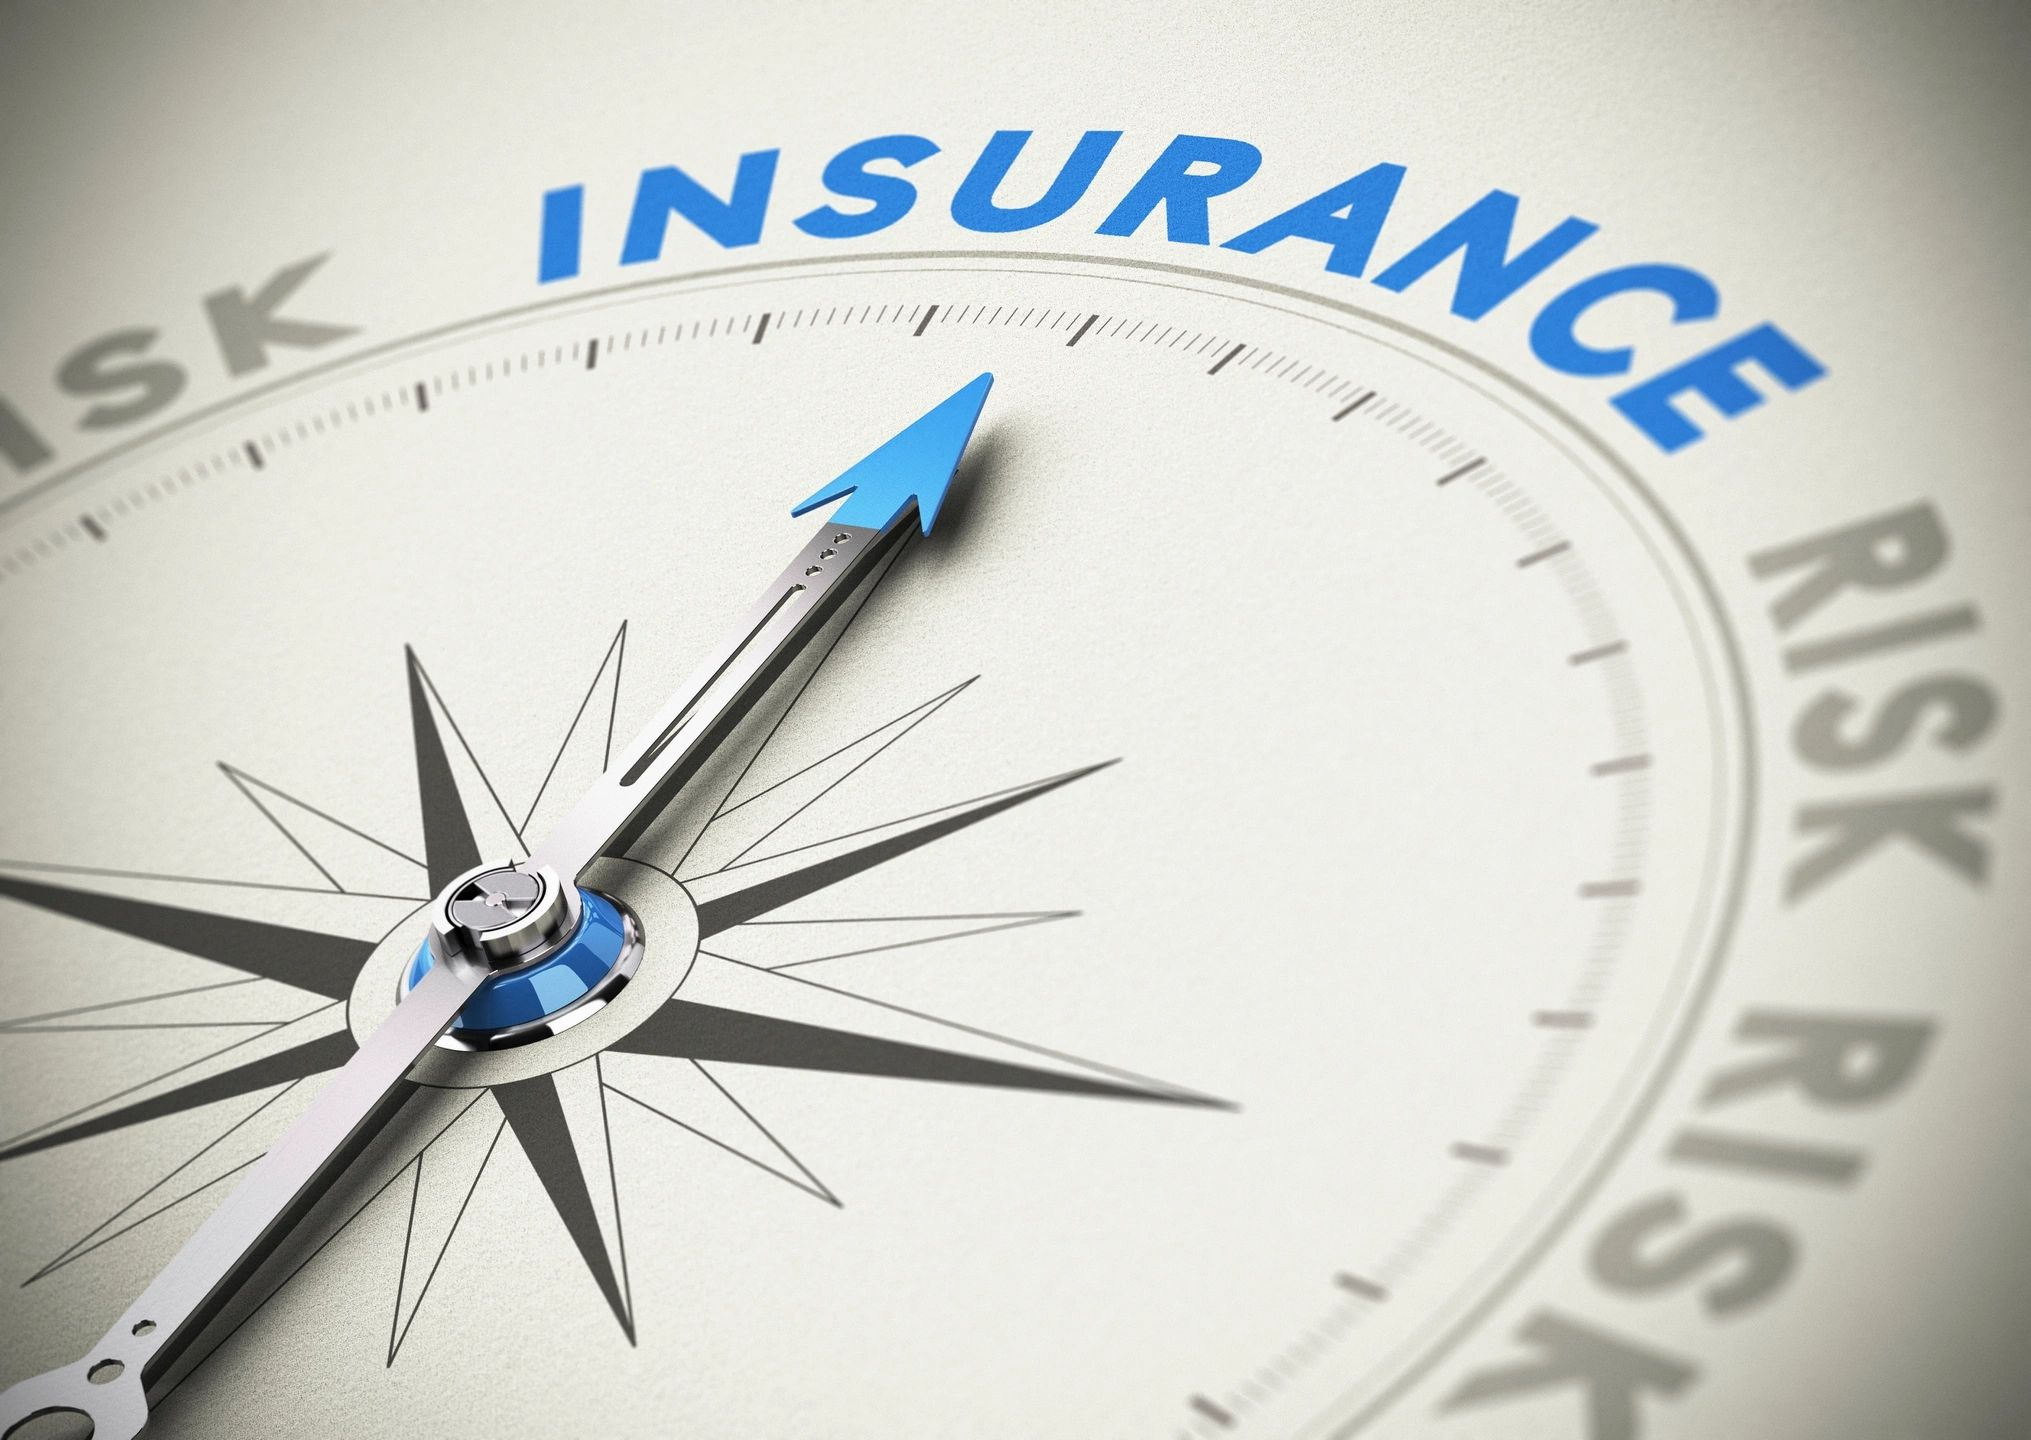 As your Insurance Broker let me find you the best coverage .